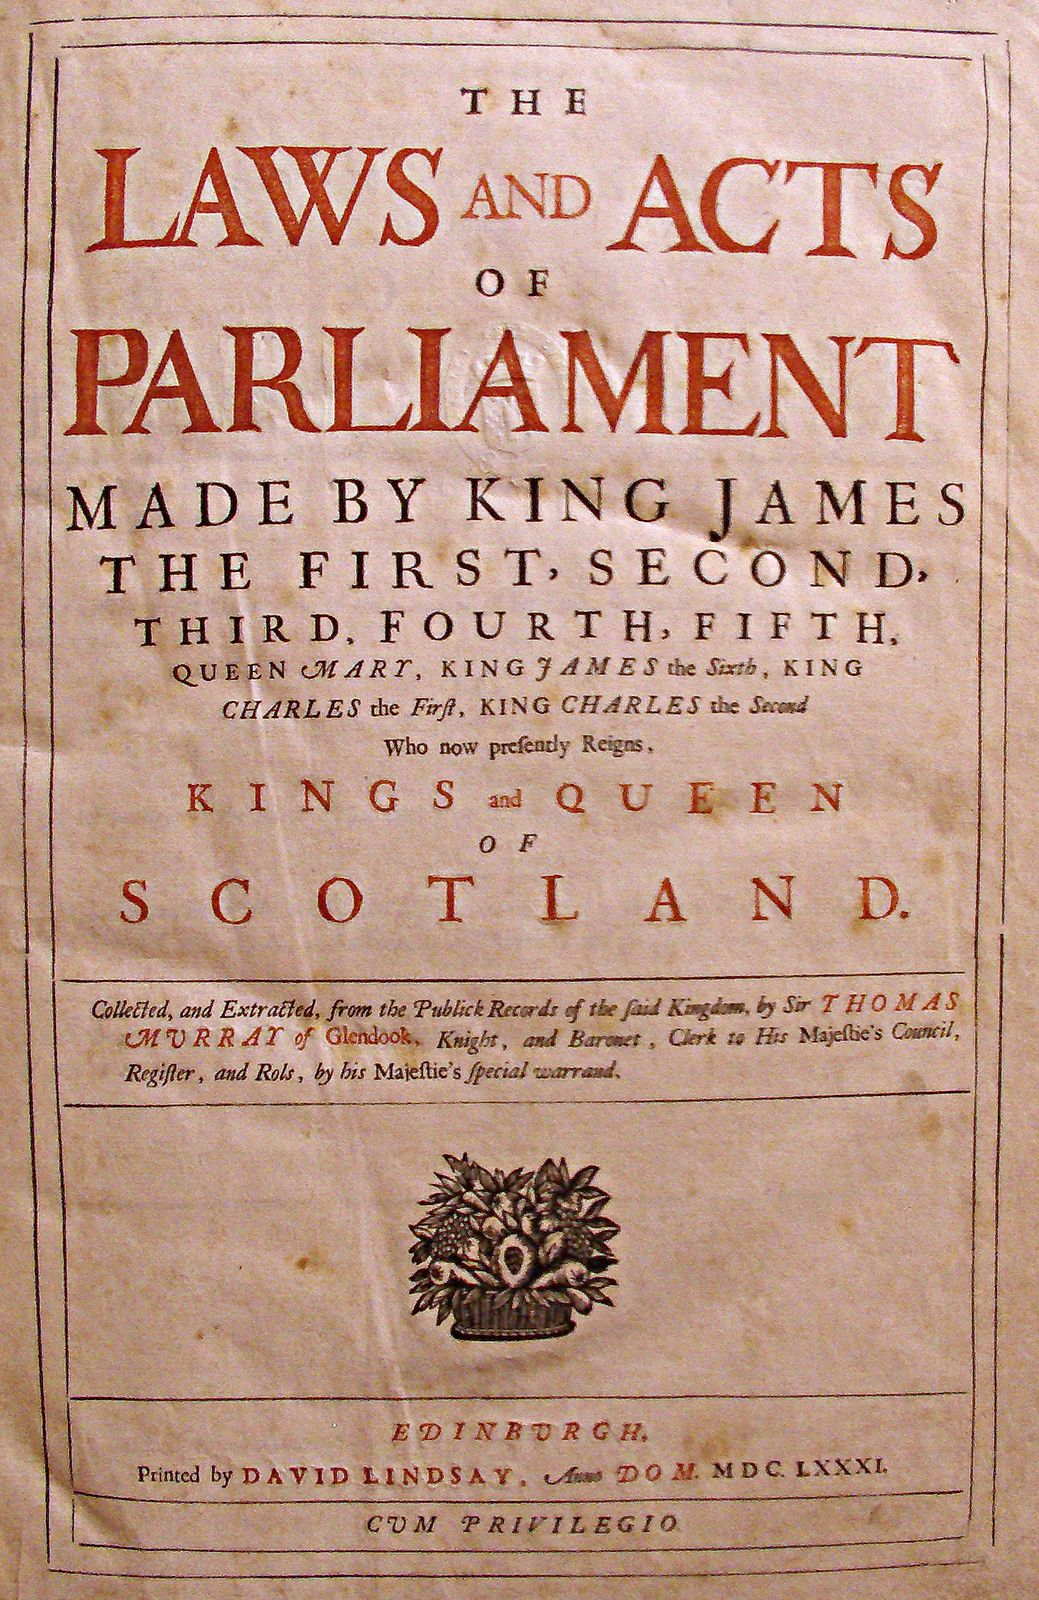 This copy is the perfect book for people who are fond of #17thcenturyhistory.  This #antiquarianbook is a very #rarebook. It includes the acts + Chronologie of of the #kingofscotland since King James the first. This rare copy is illustrated with occasional engravings of the monarch's crests & decorative flourishes. Some occasional foxing, mostly on plates & at front, but generally clean & in surprisingly good condition for its age.